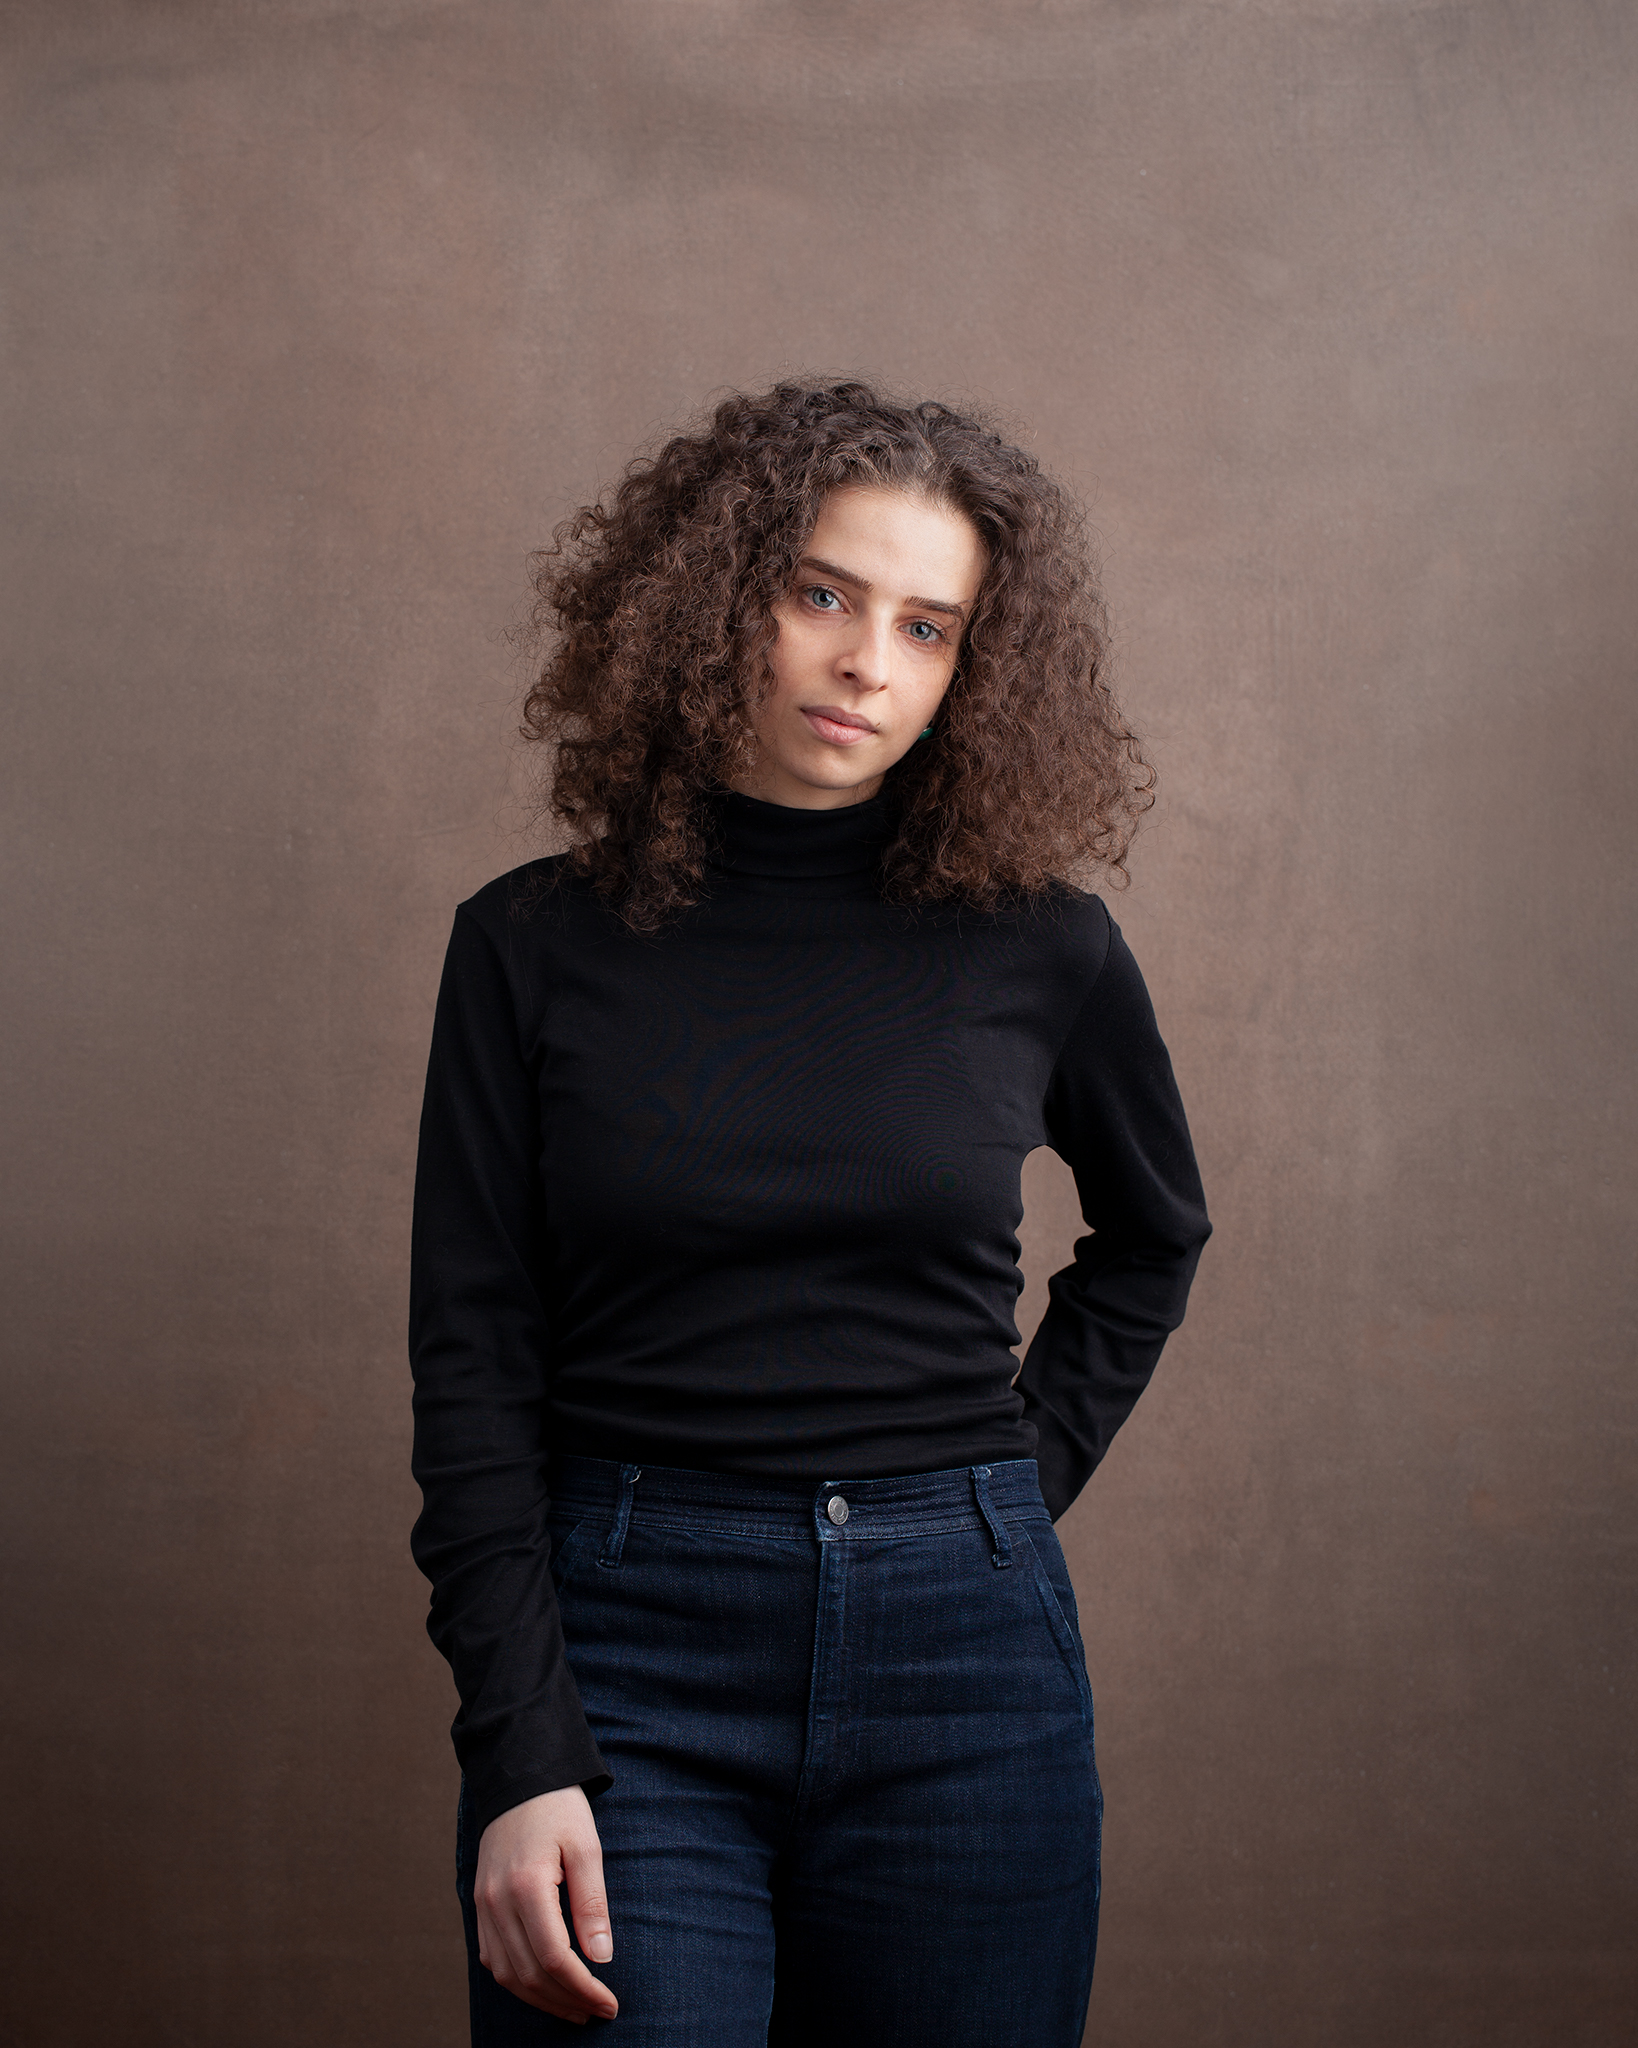 Jenna is posing with one hand in her back pocket and the other hand at her side, staring directly in the camera. She is wearing a black turtleneck and dark blue jeans, and has a copper colored backdrop.